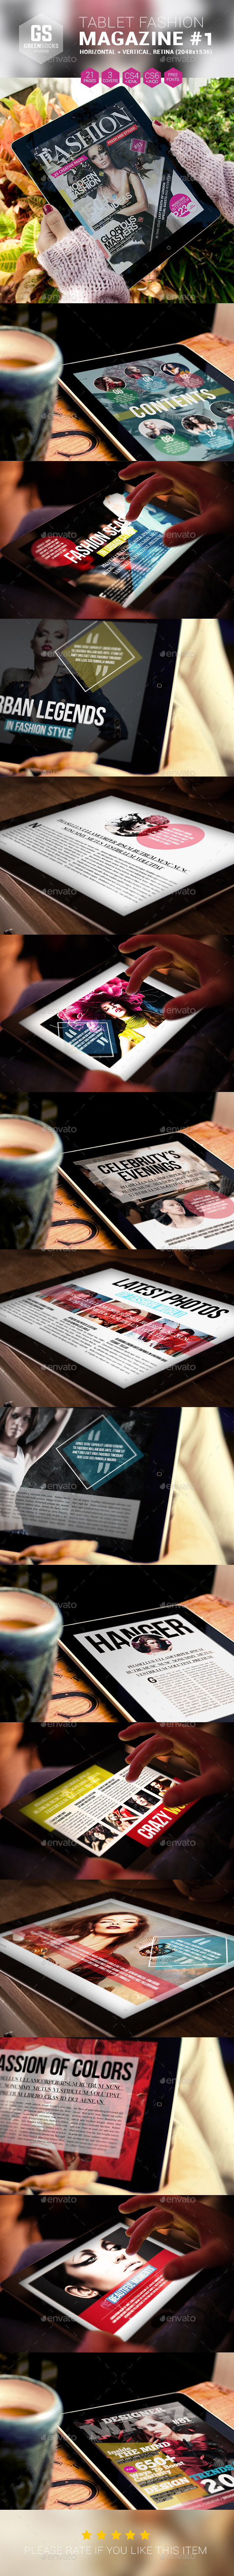 Tablet Fashion Magazine - Digital Magazines ePublishing